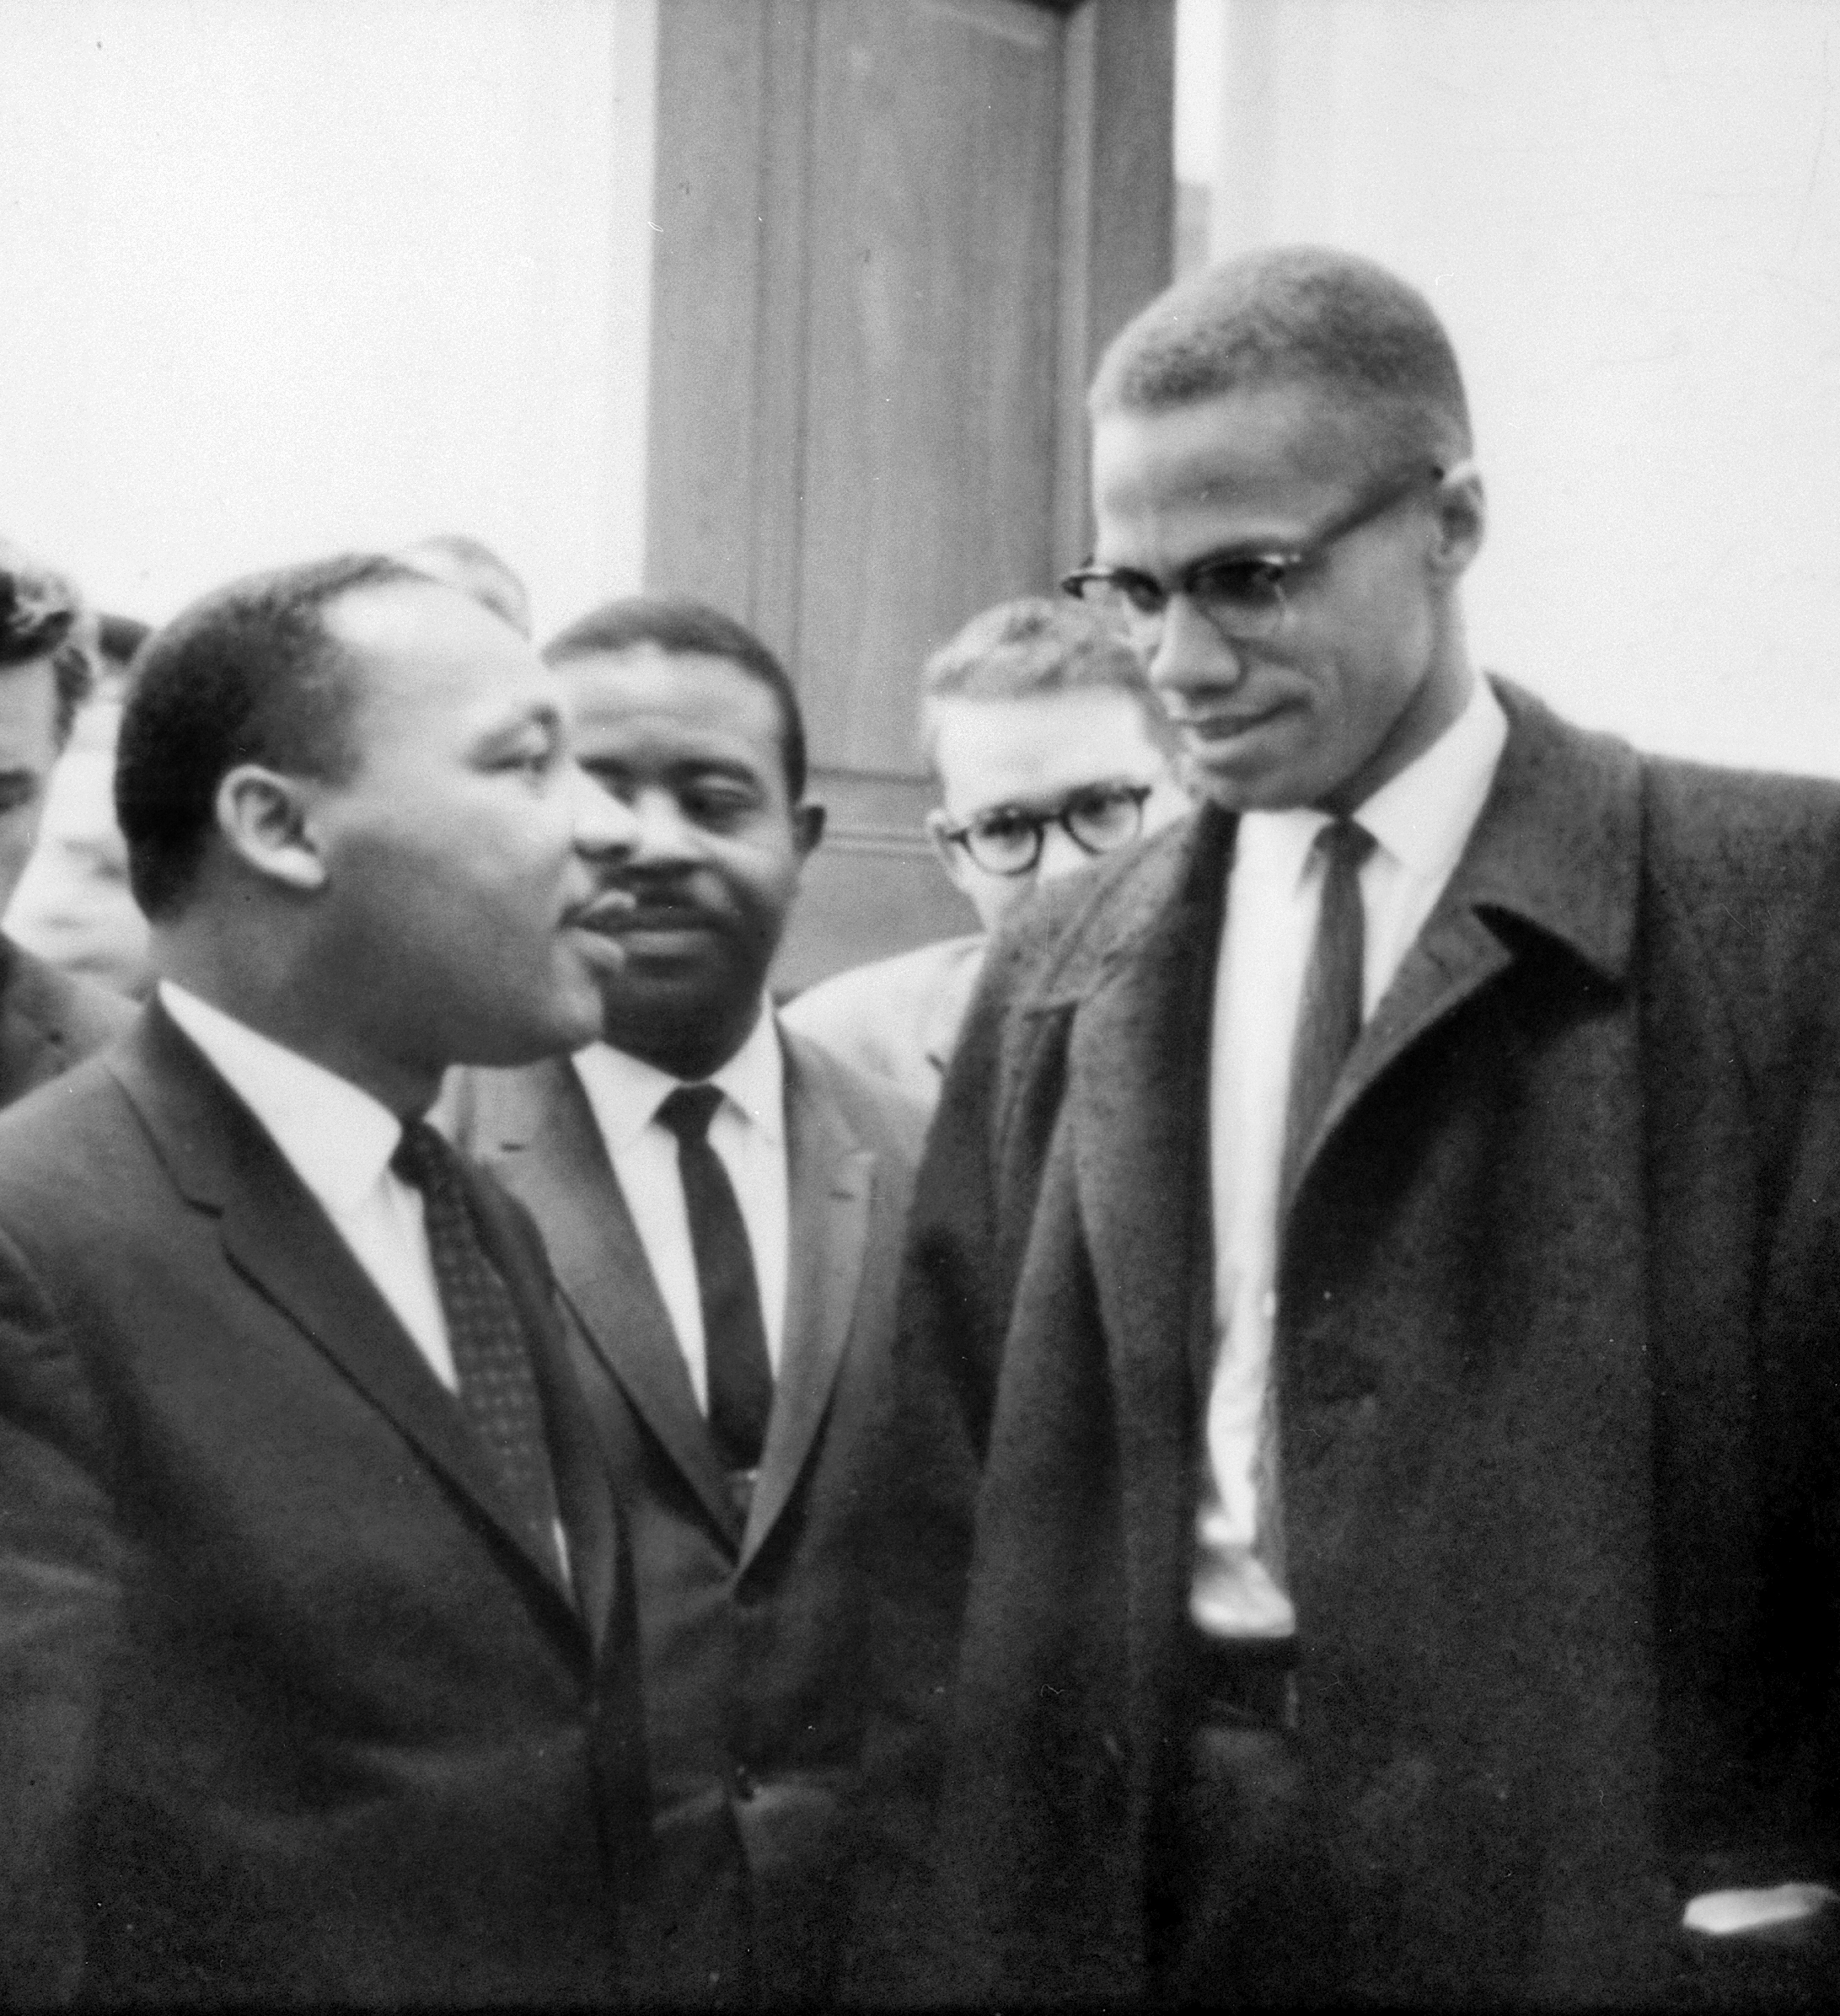 Martin Luther King Jr. and Malcolm X, March 26, 1964